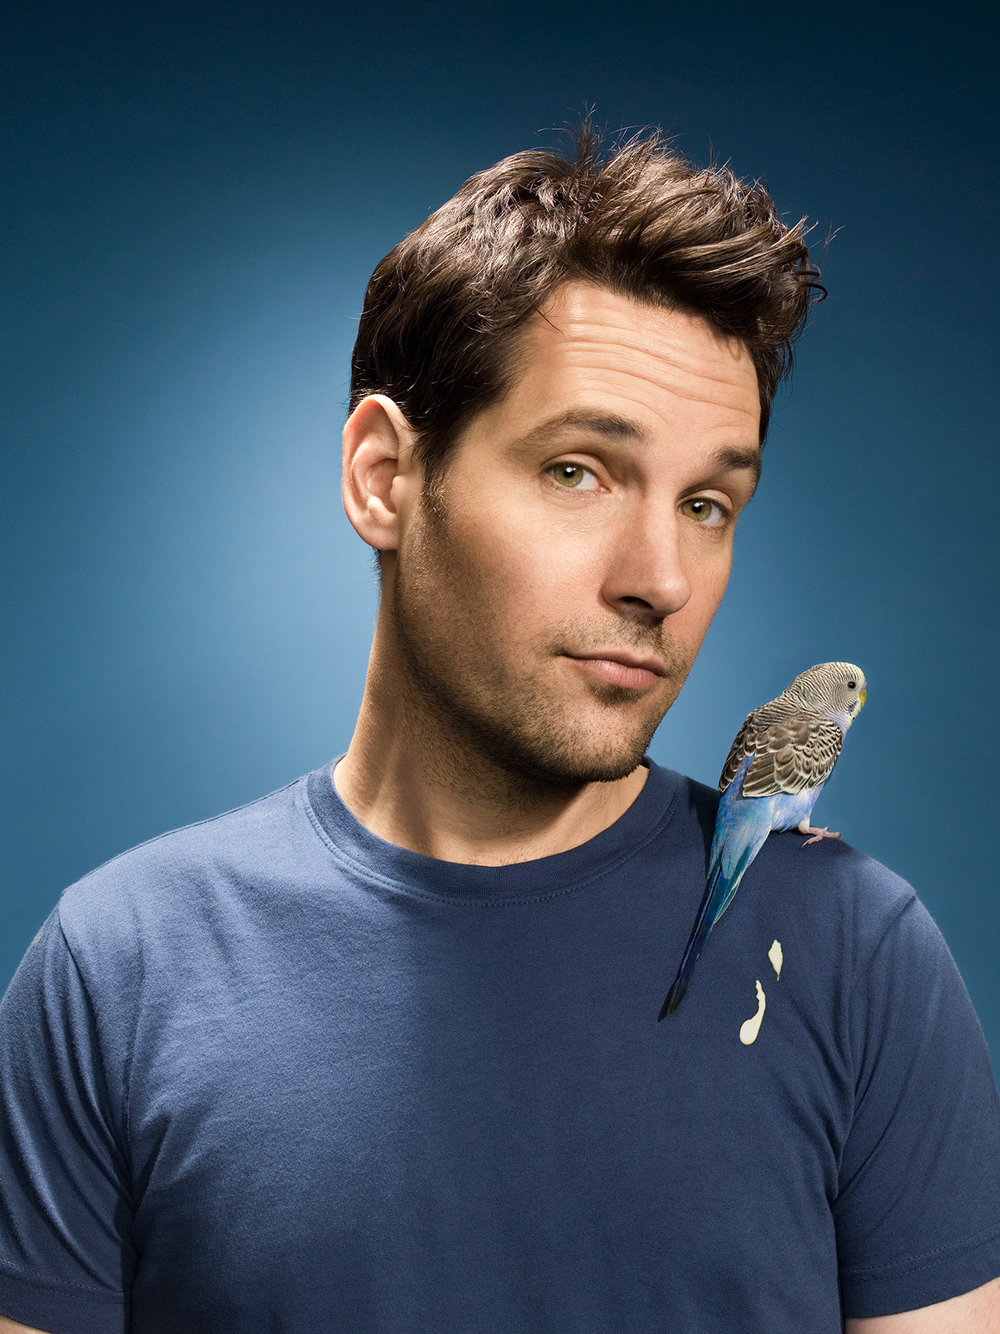 Paul Rudd_0648_RET copy.jpg